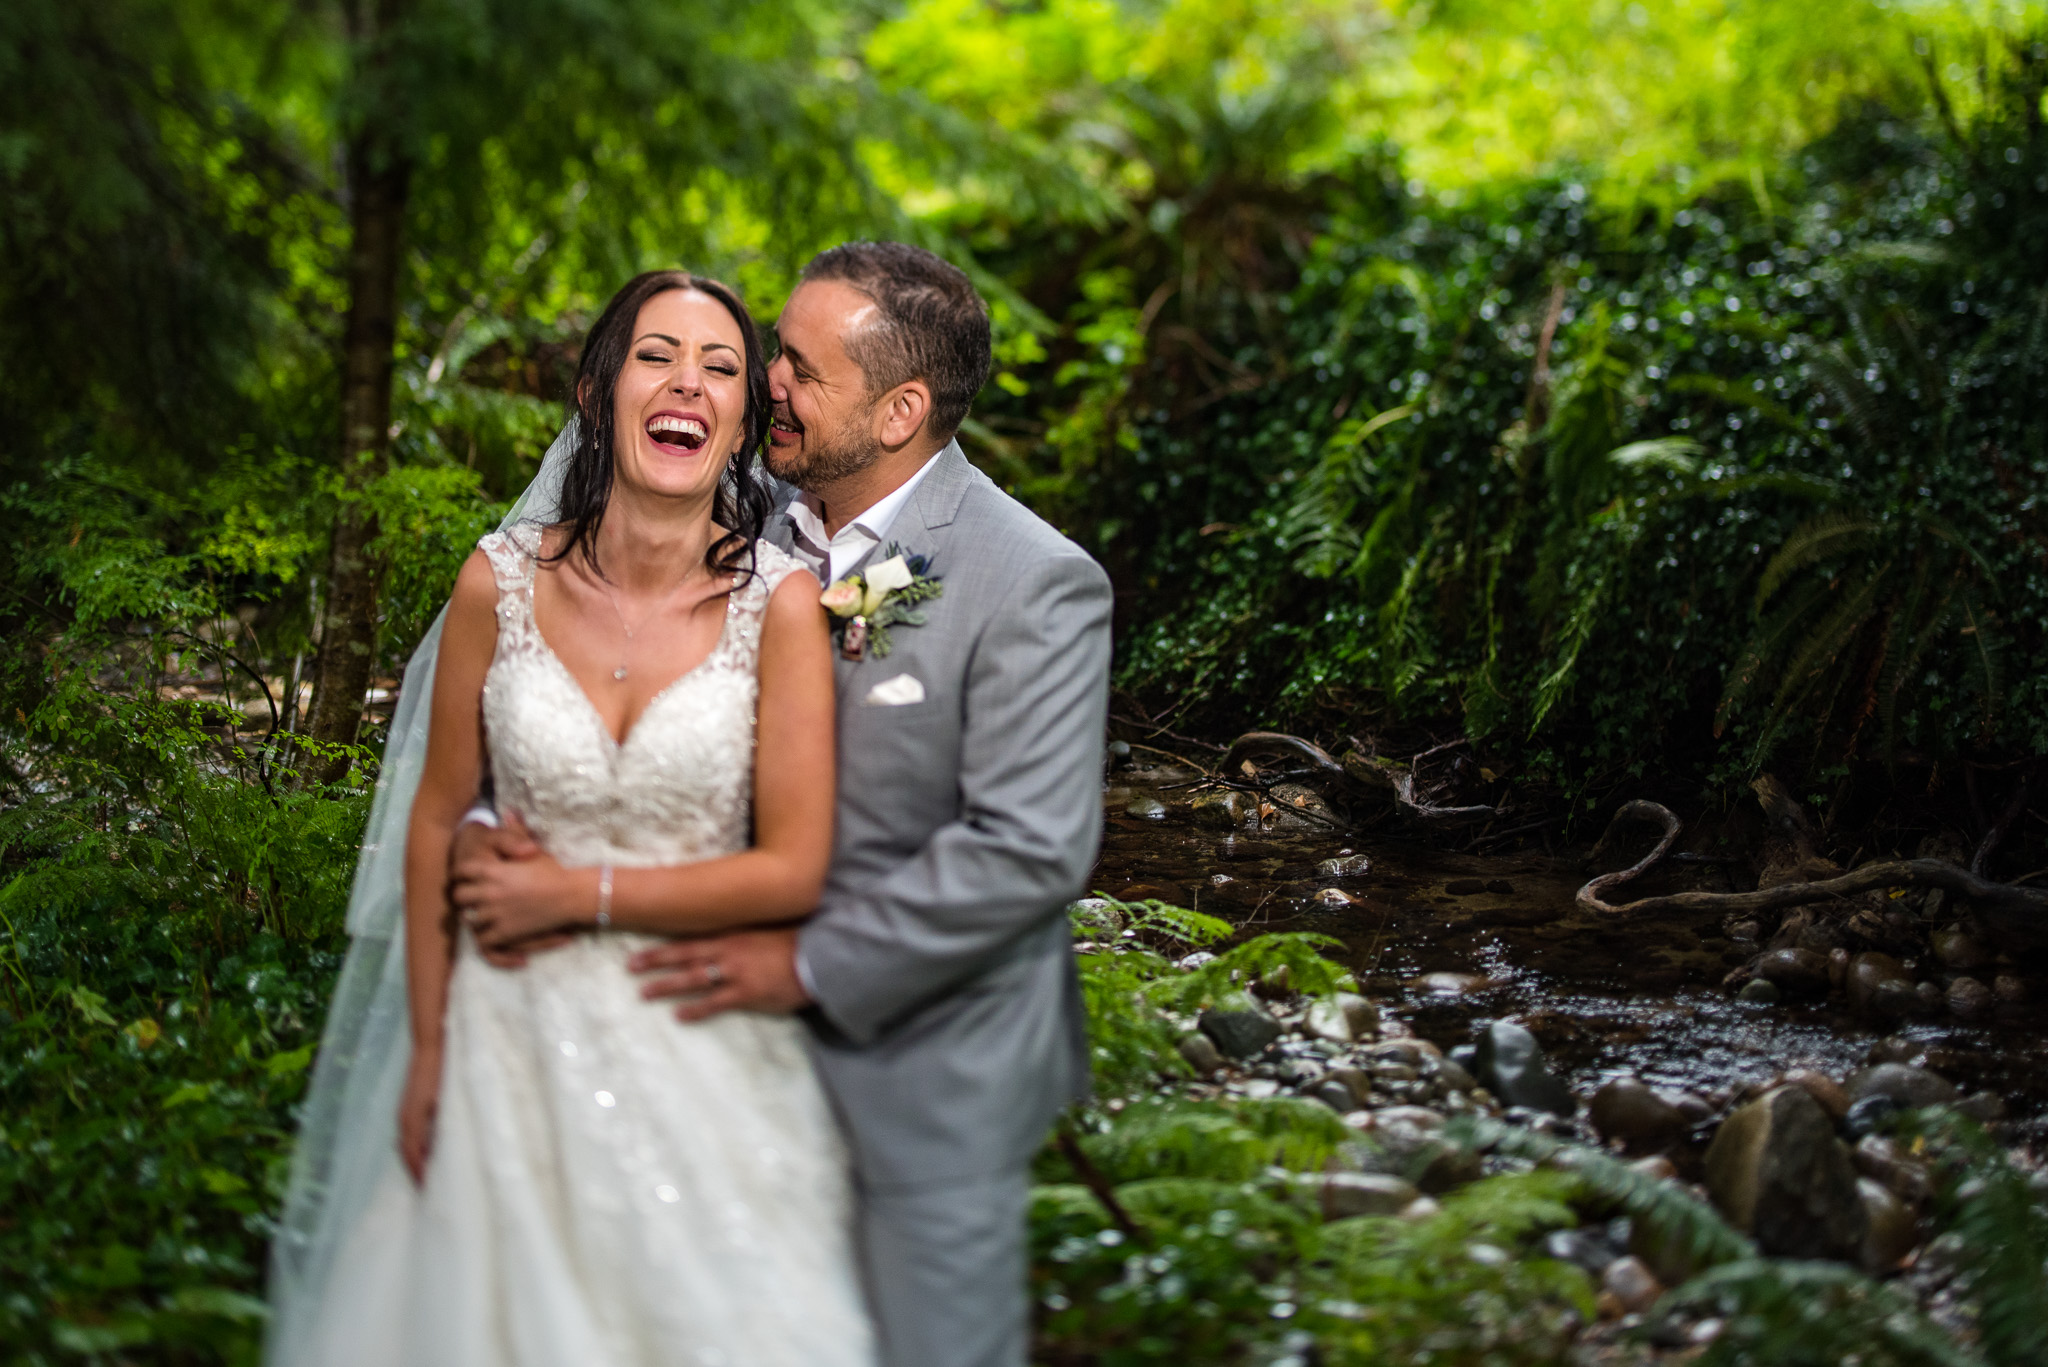 linwood-house-wedding-roberts-creek-sunshine-coast-wedding-photographers-23.jpg